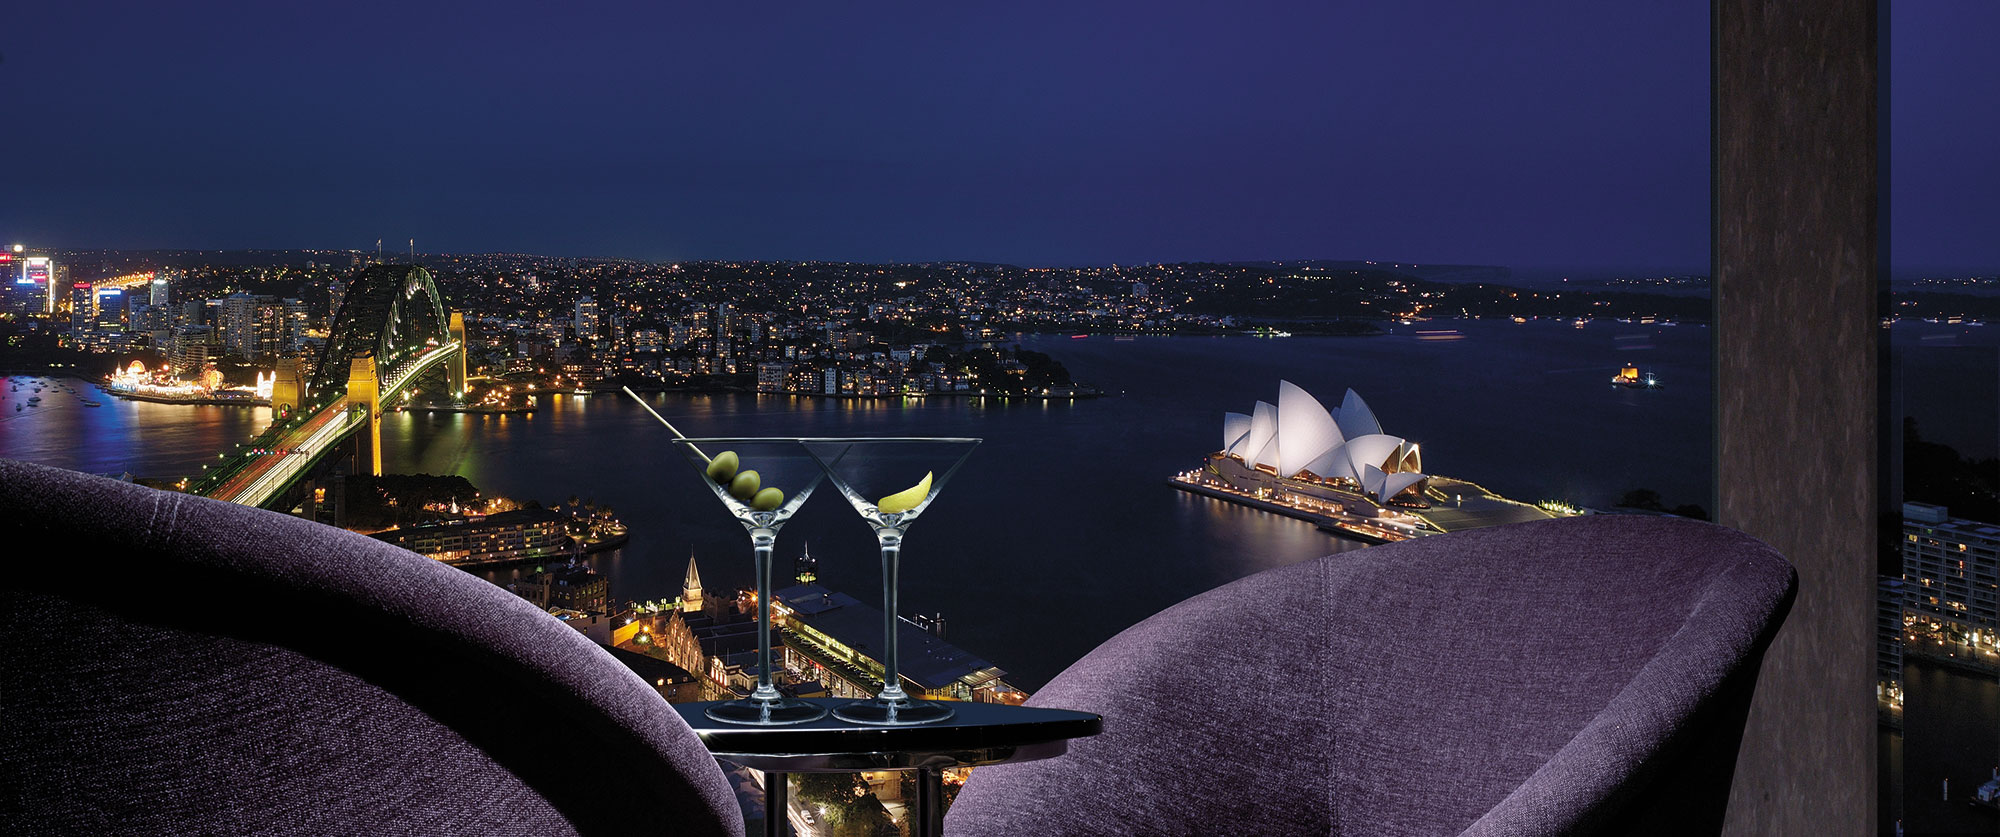 Best Sydney Hotel - Australia New Zealand - Vacation Package - 5 star - Australia New Zealand Highlights